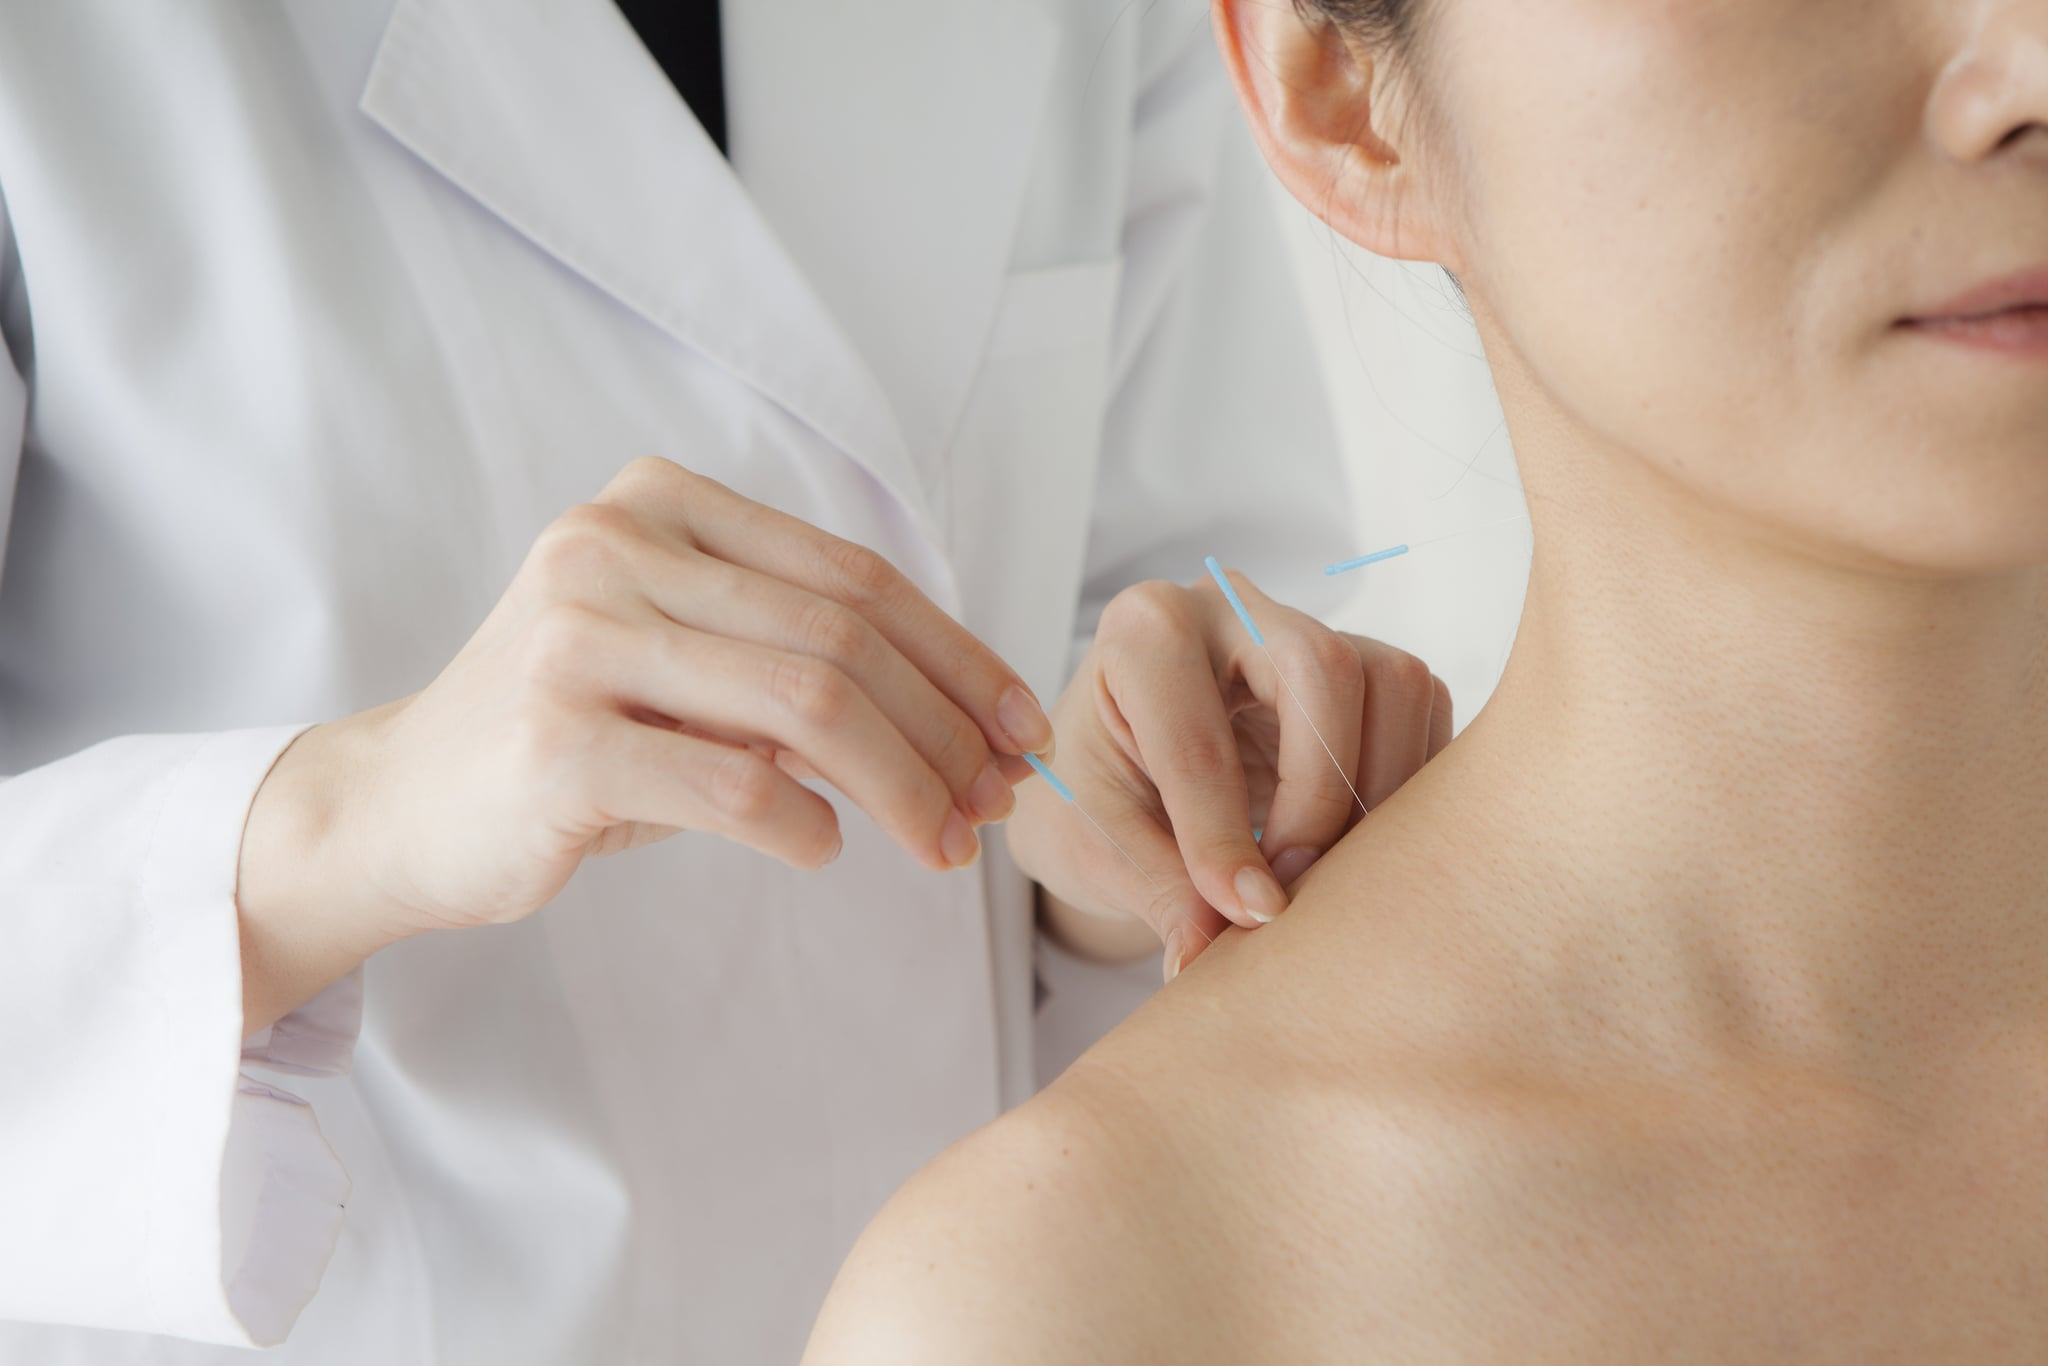 5 Acupuncture Side Effects to Know About Before Your Treatment